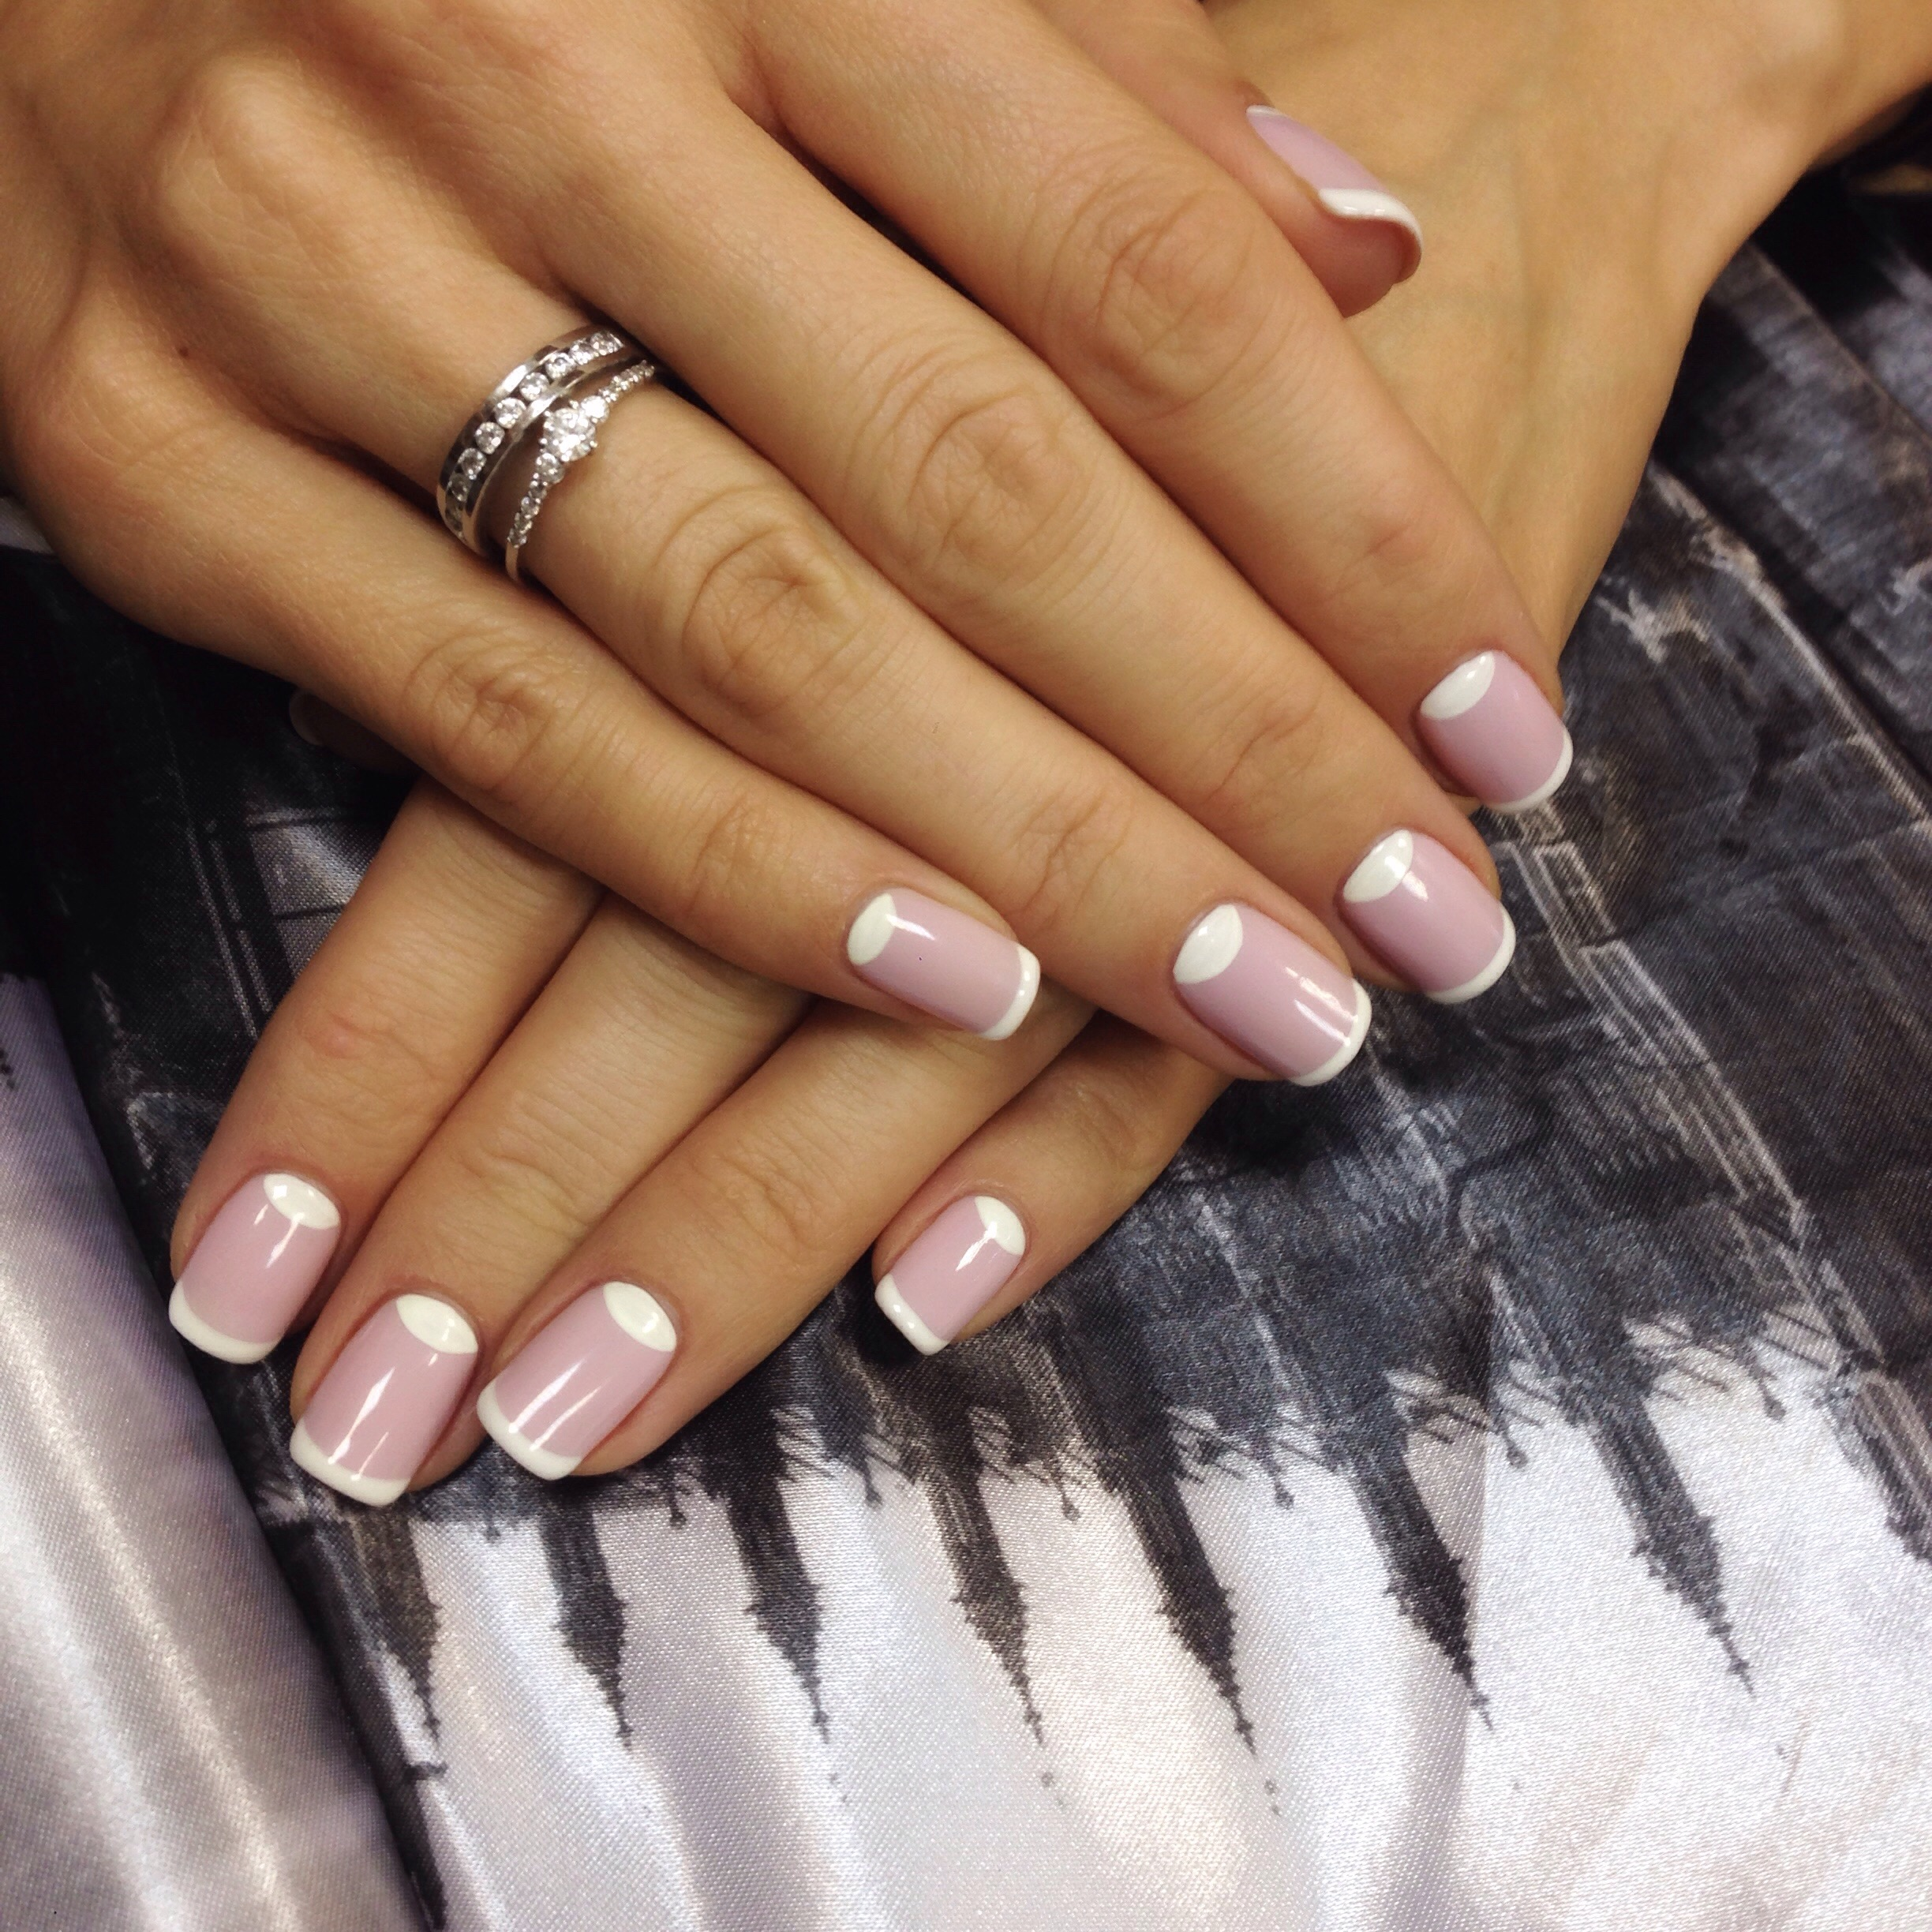 Nail Designs And Nail Art Latest Trends: Nail Trends You Must Try For Spring 2017